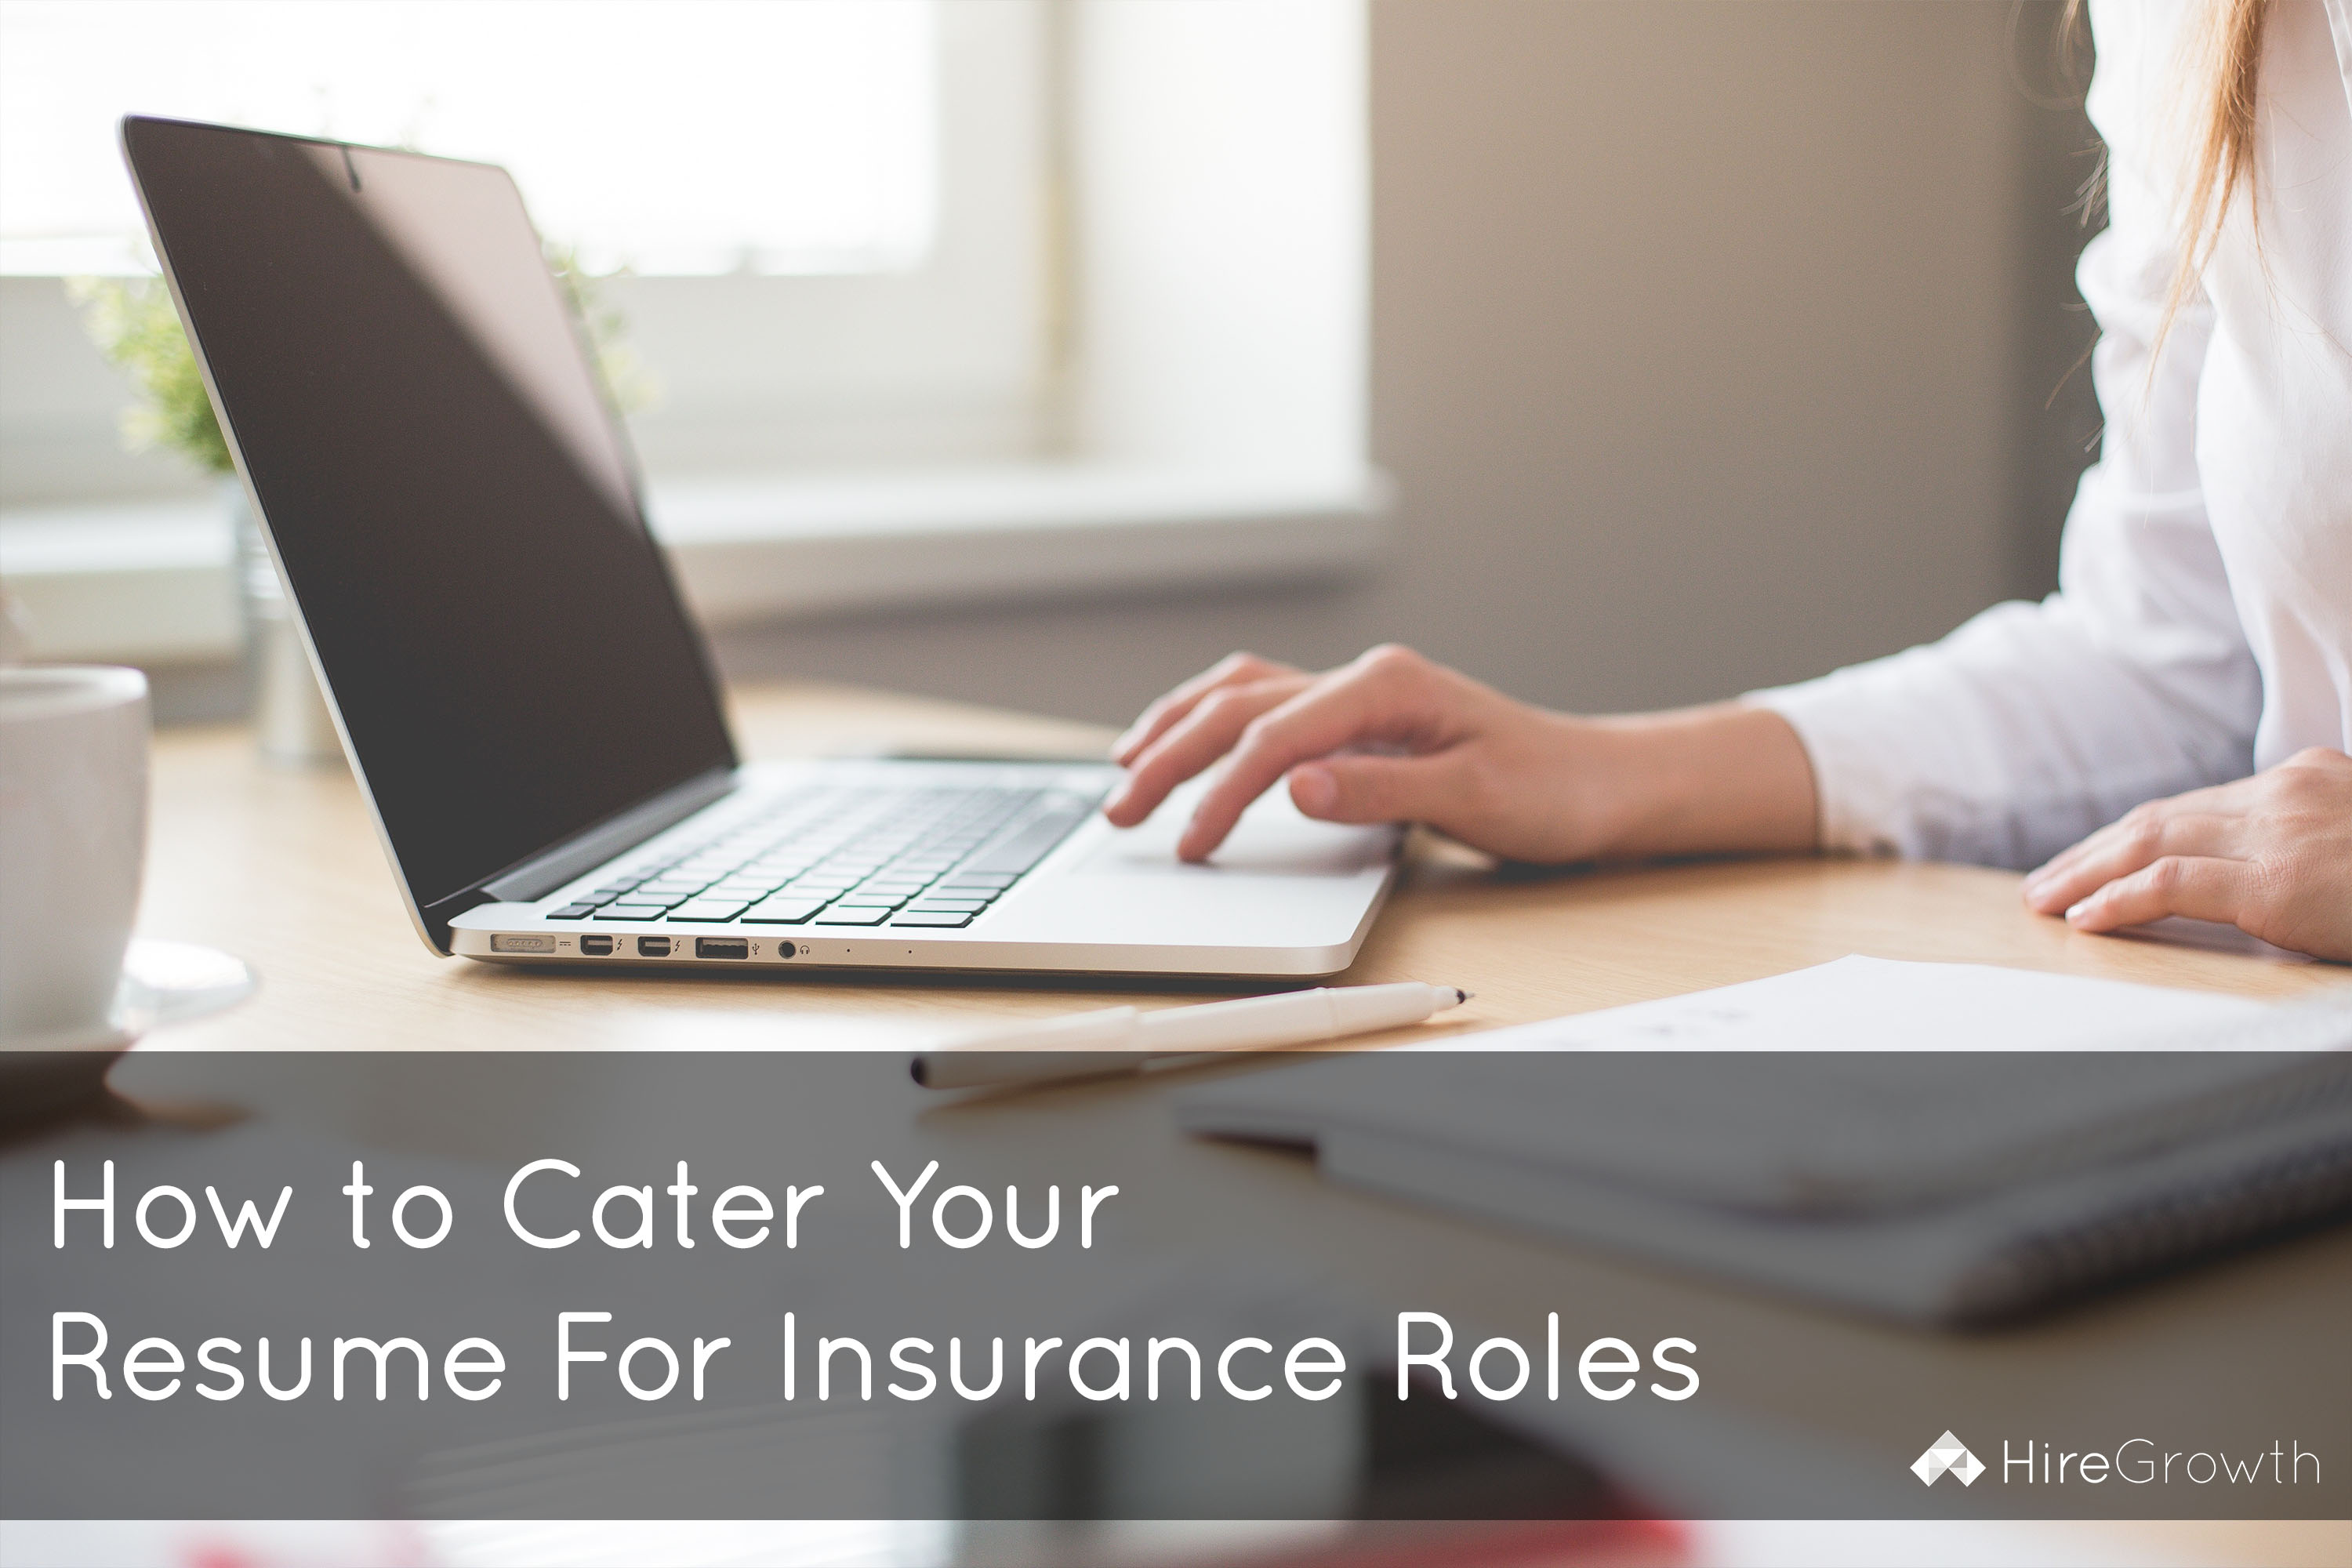 How to Cater Your Resume For Insurance Roles